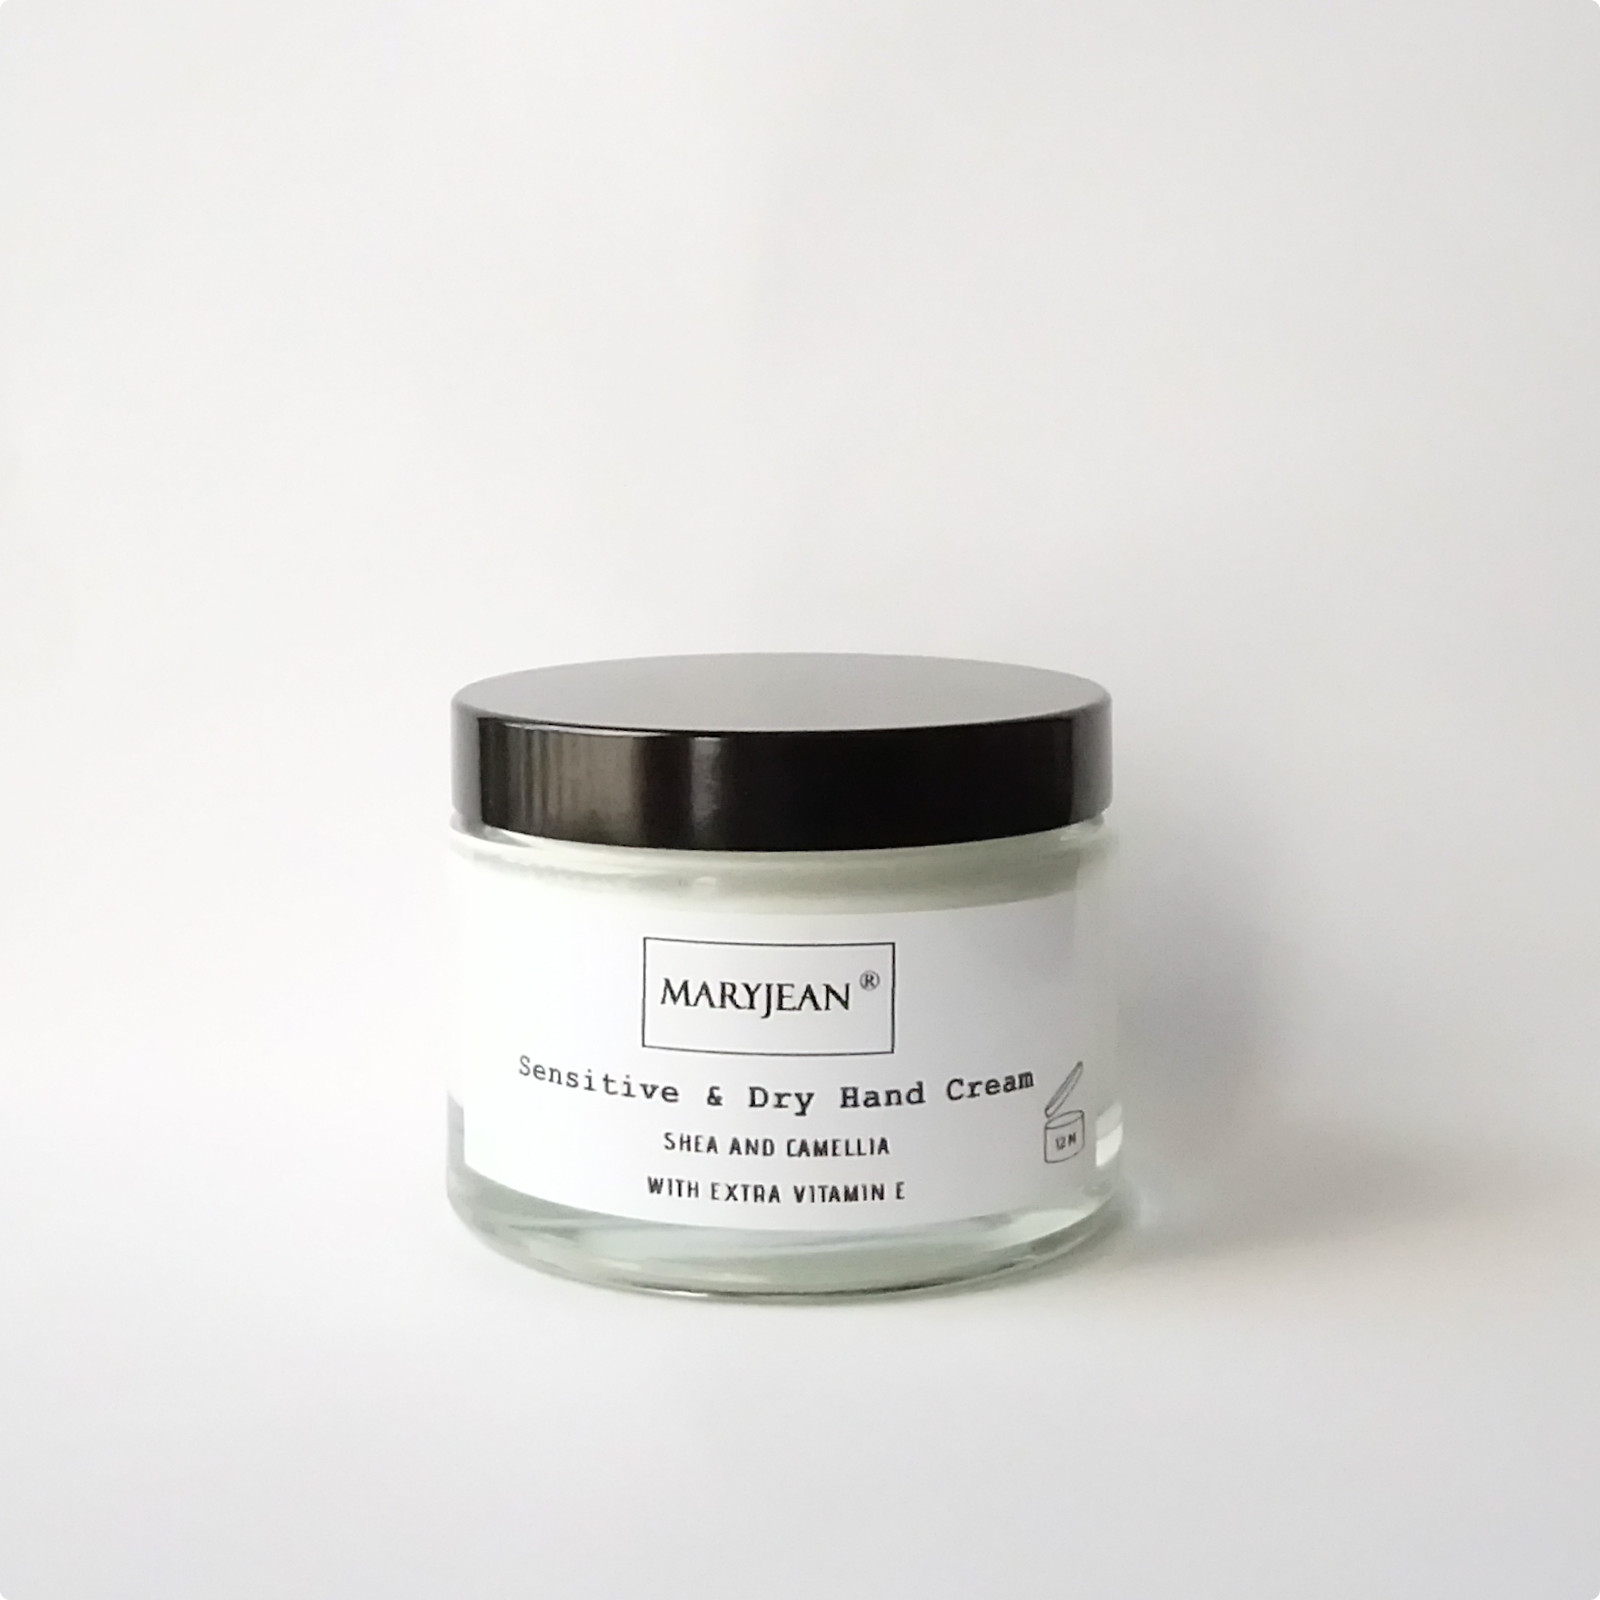 Hand and Body Moisturising cream for Sensitive Dry skin with Camellia